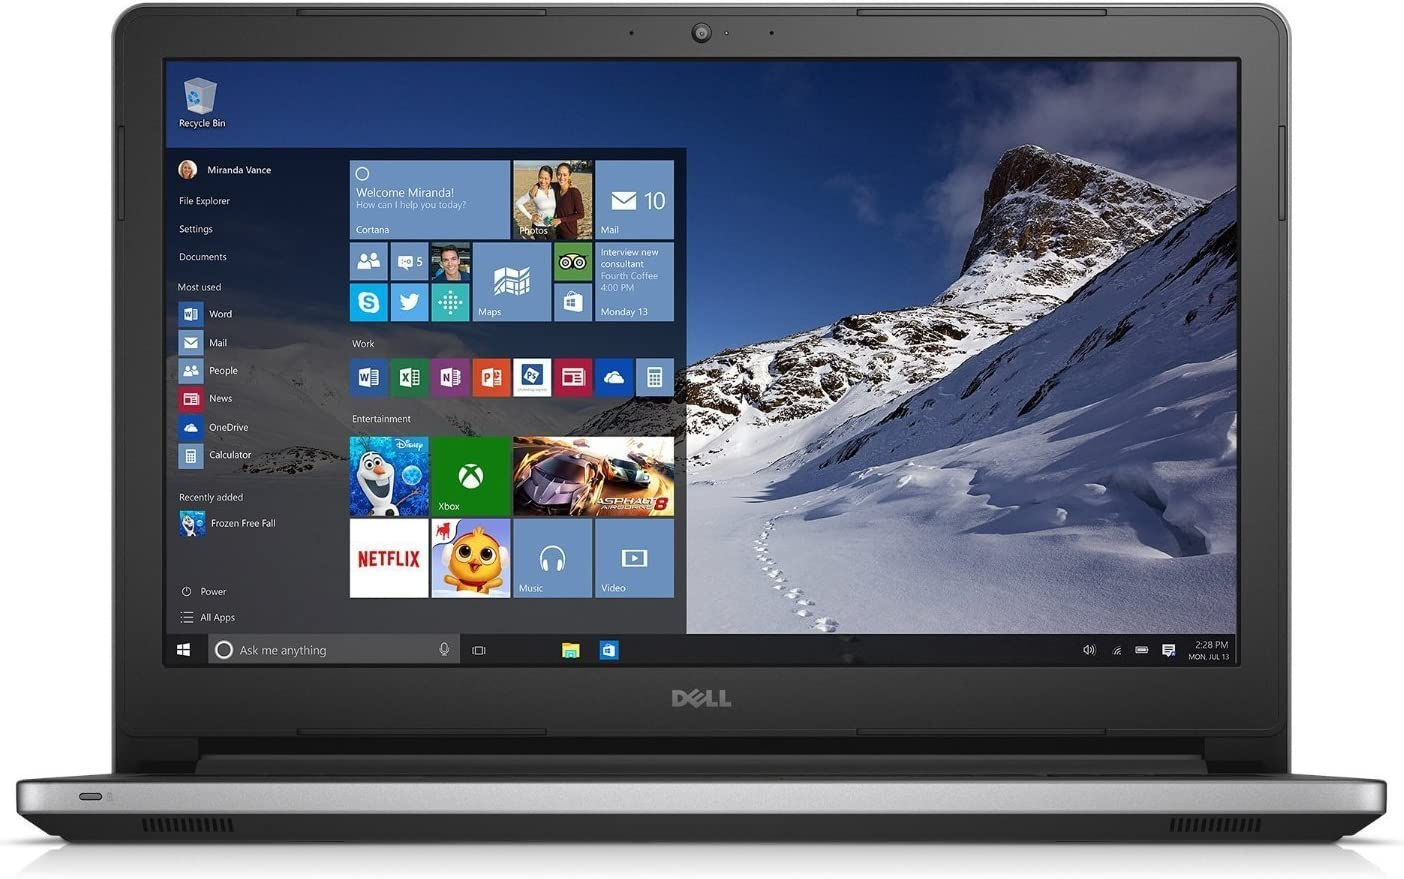 Dell Inspiron 15 i5558 Non-Touch Laptop (i5-4210U/ 8G/ 1TB) Windows 10